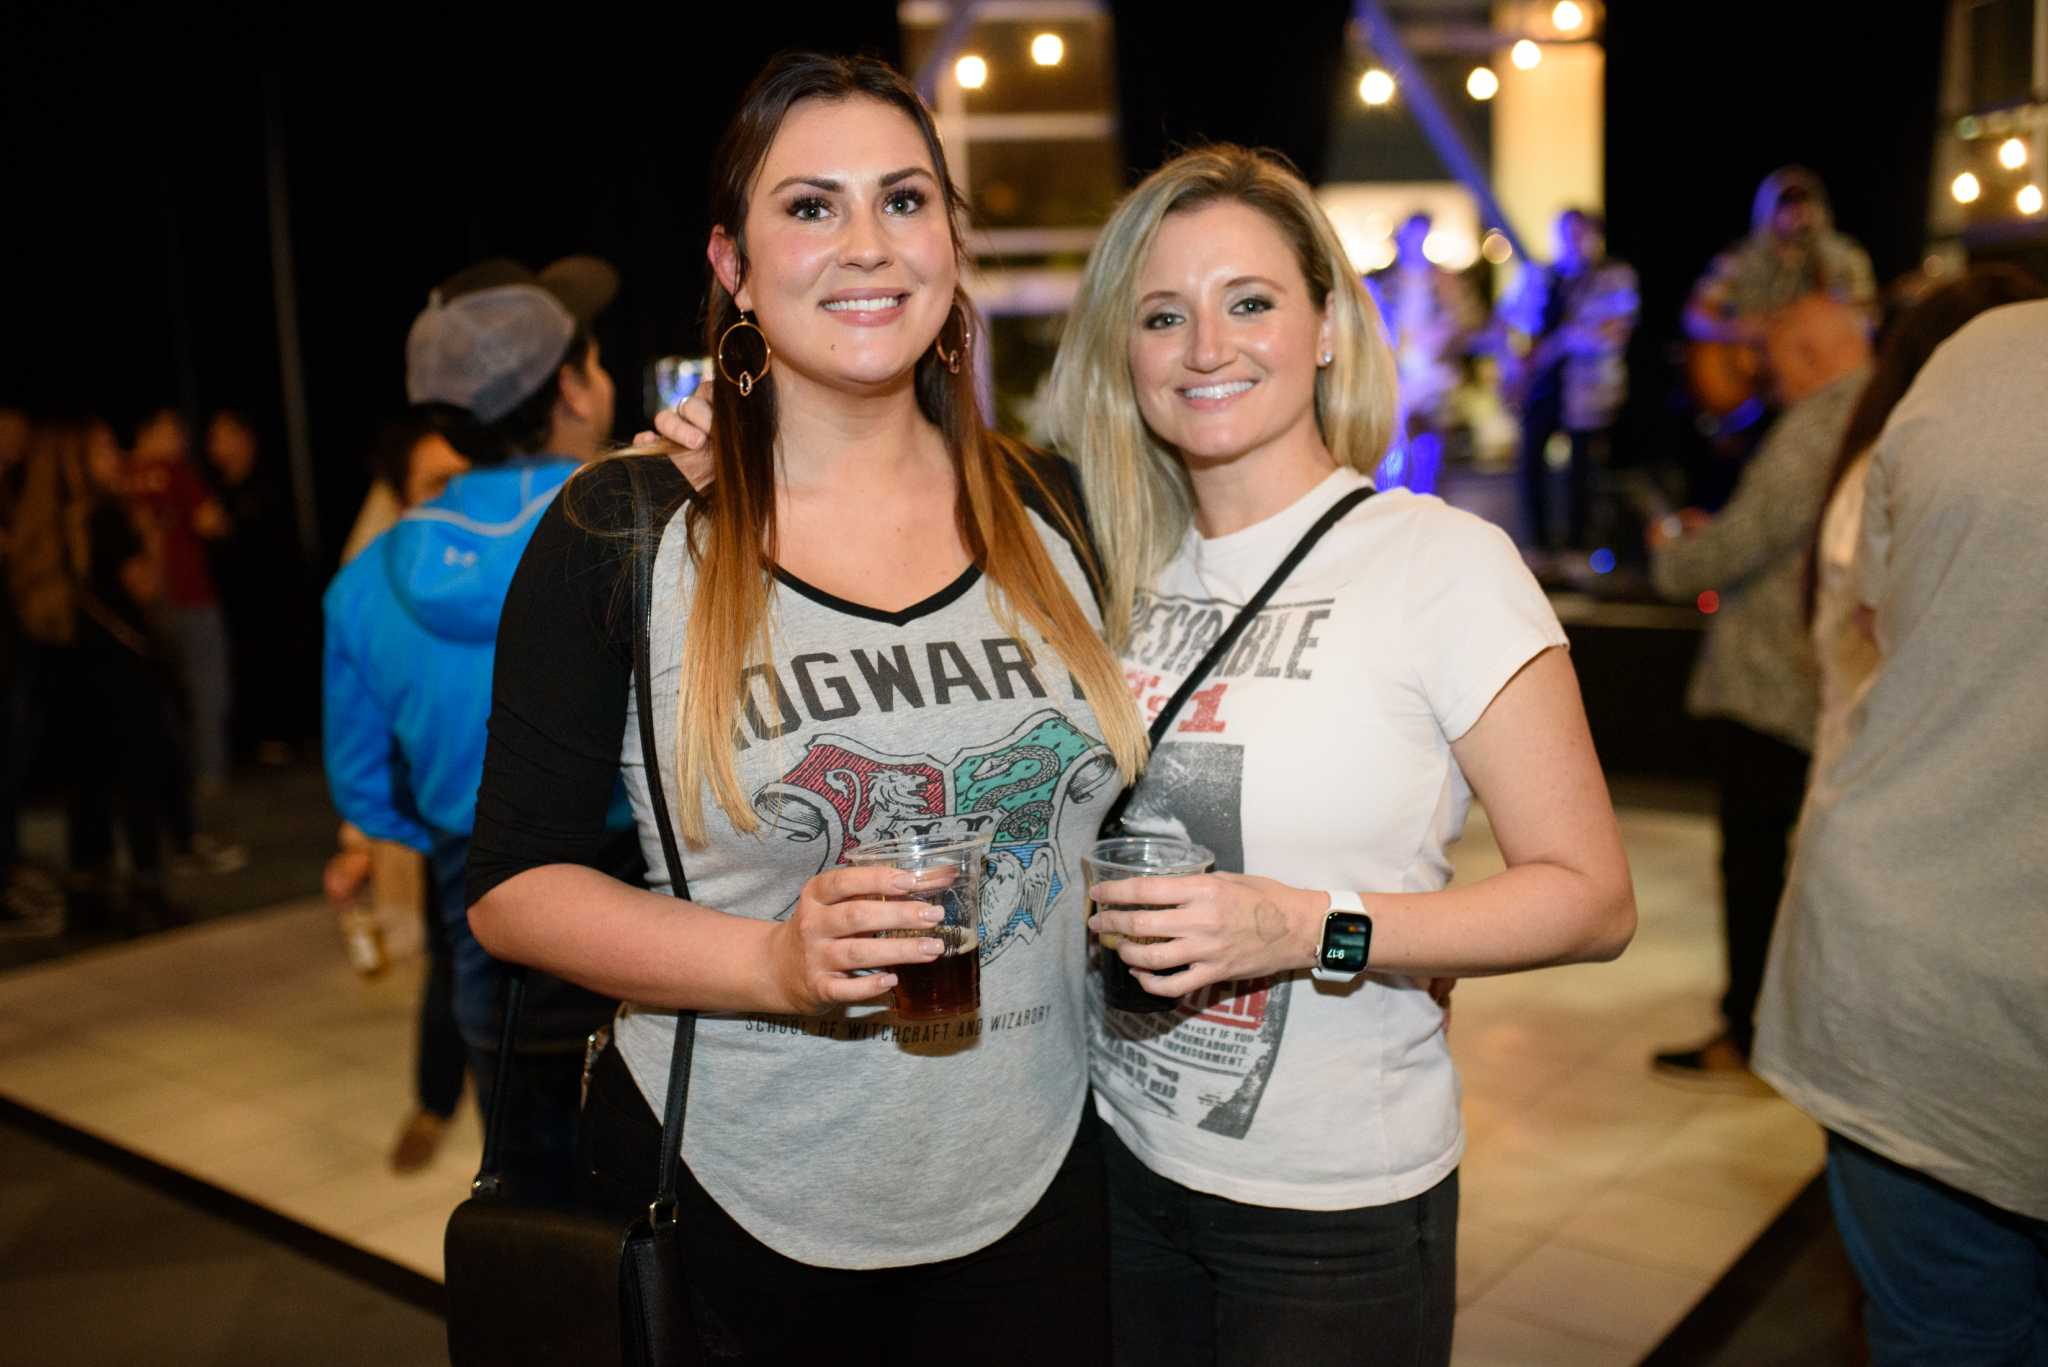 Enchanting elixirs on hand at Wizards Beer Festival